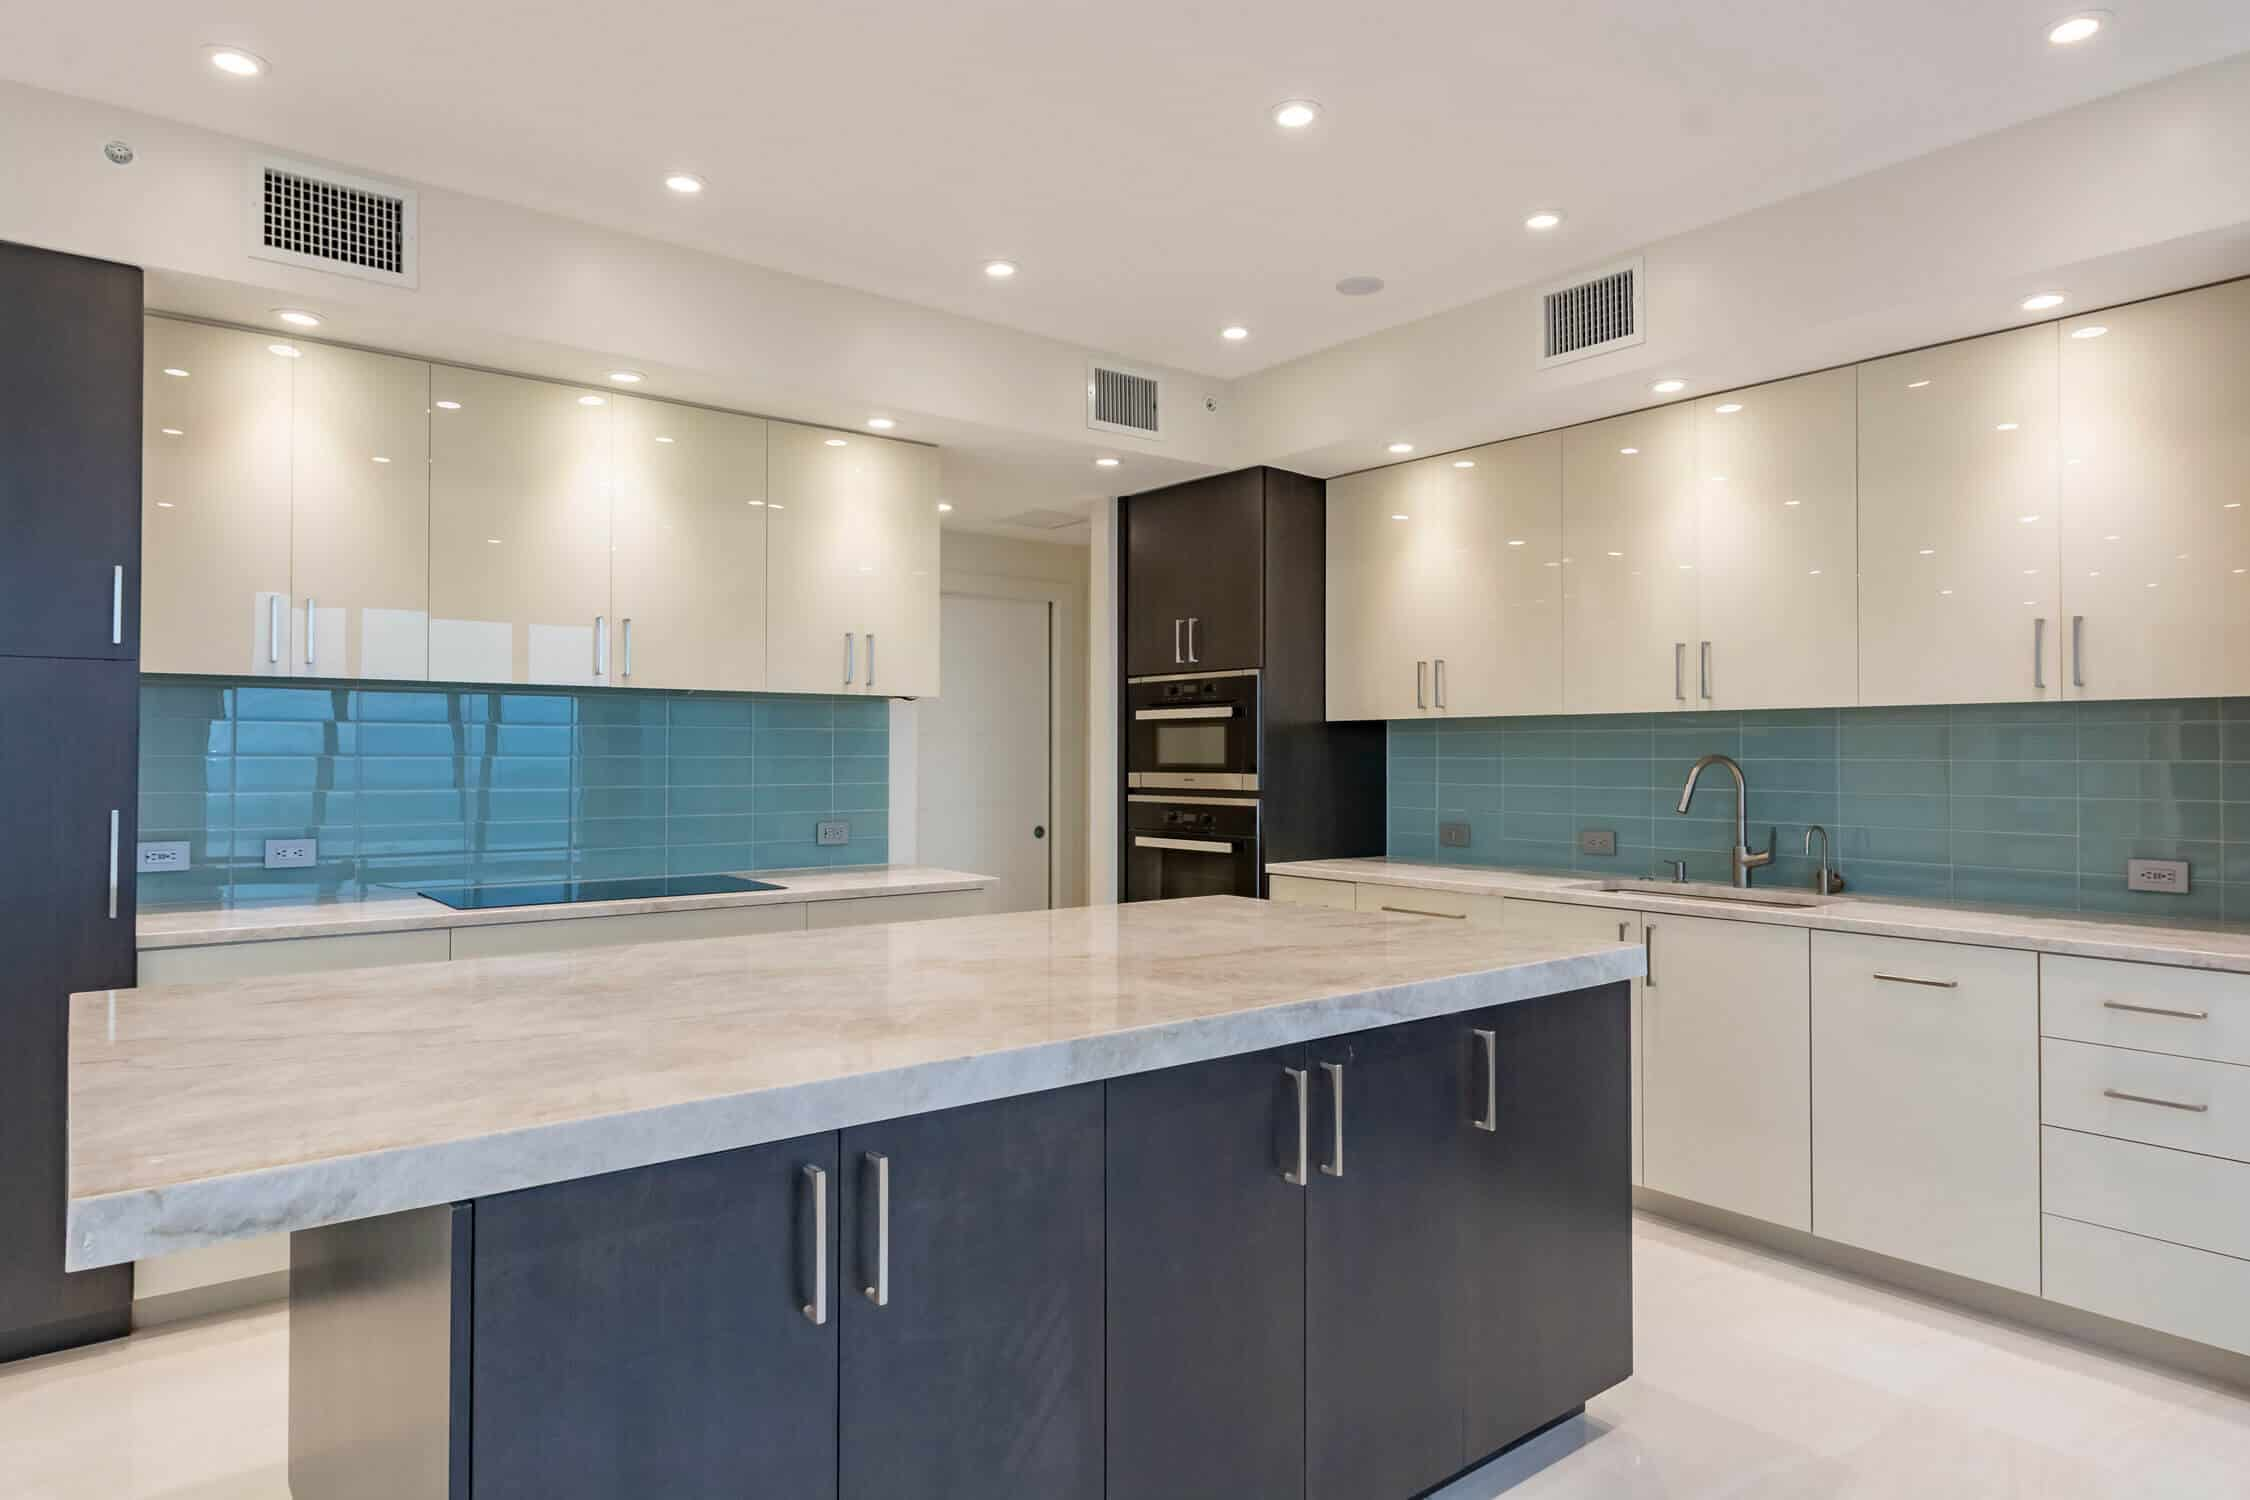 Kitchen Remodel Featuring Marble Countertop